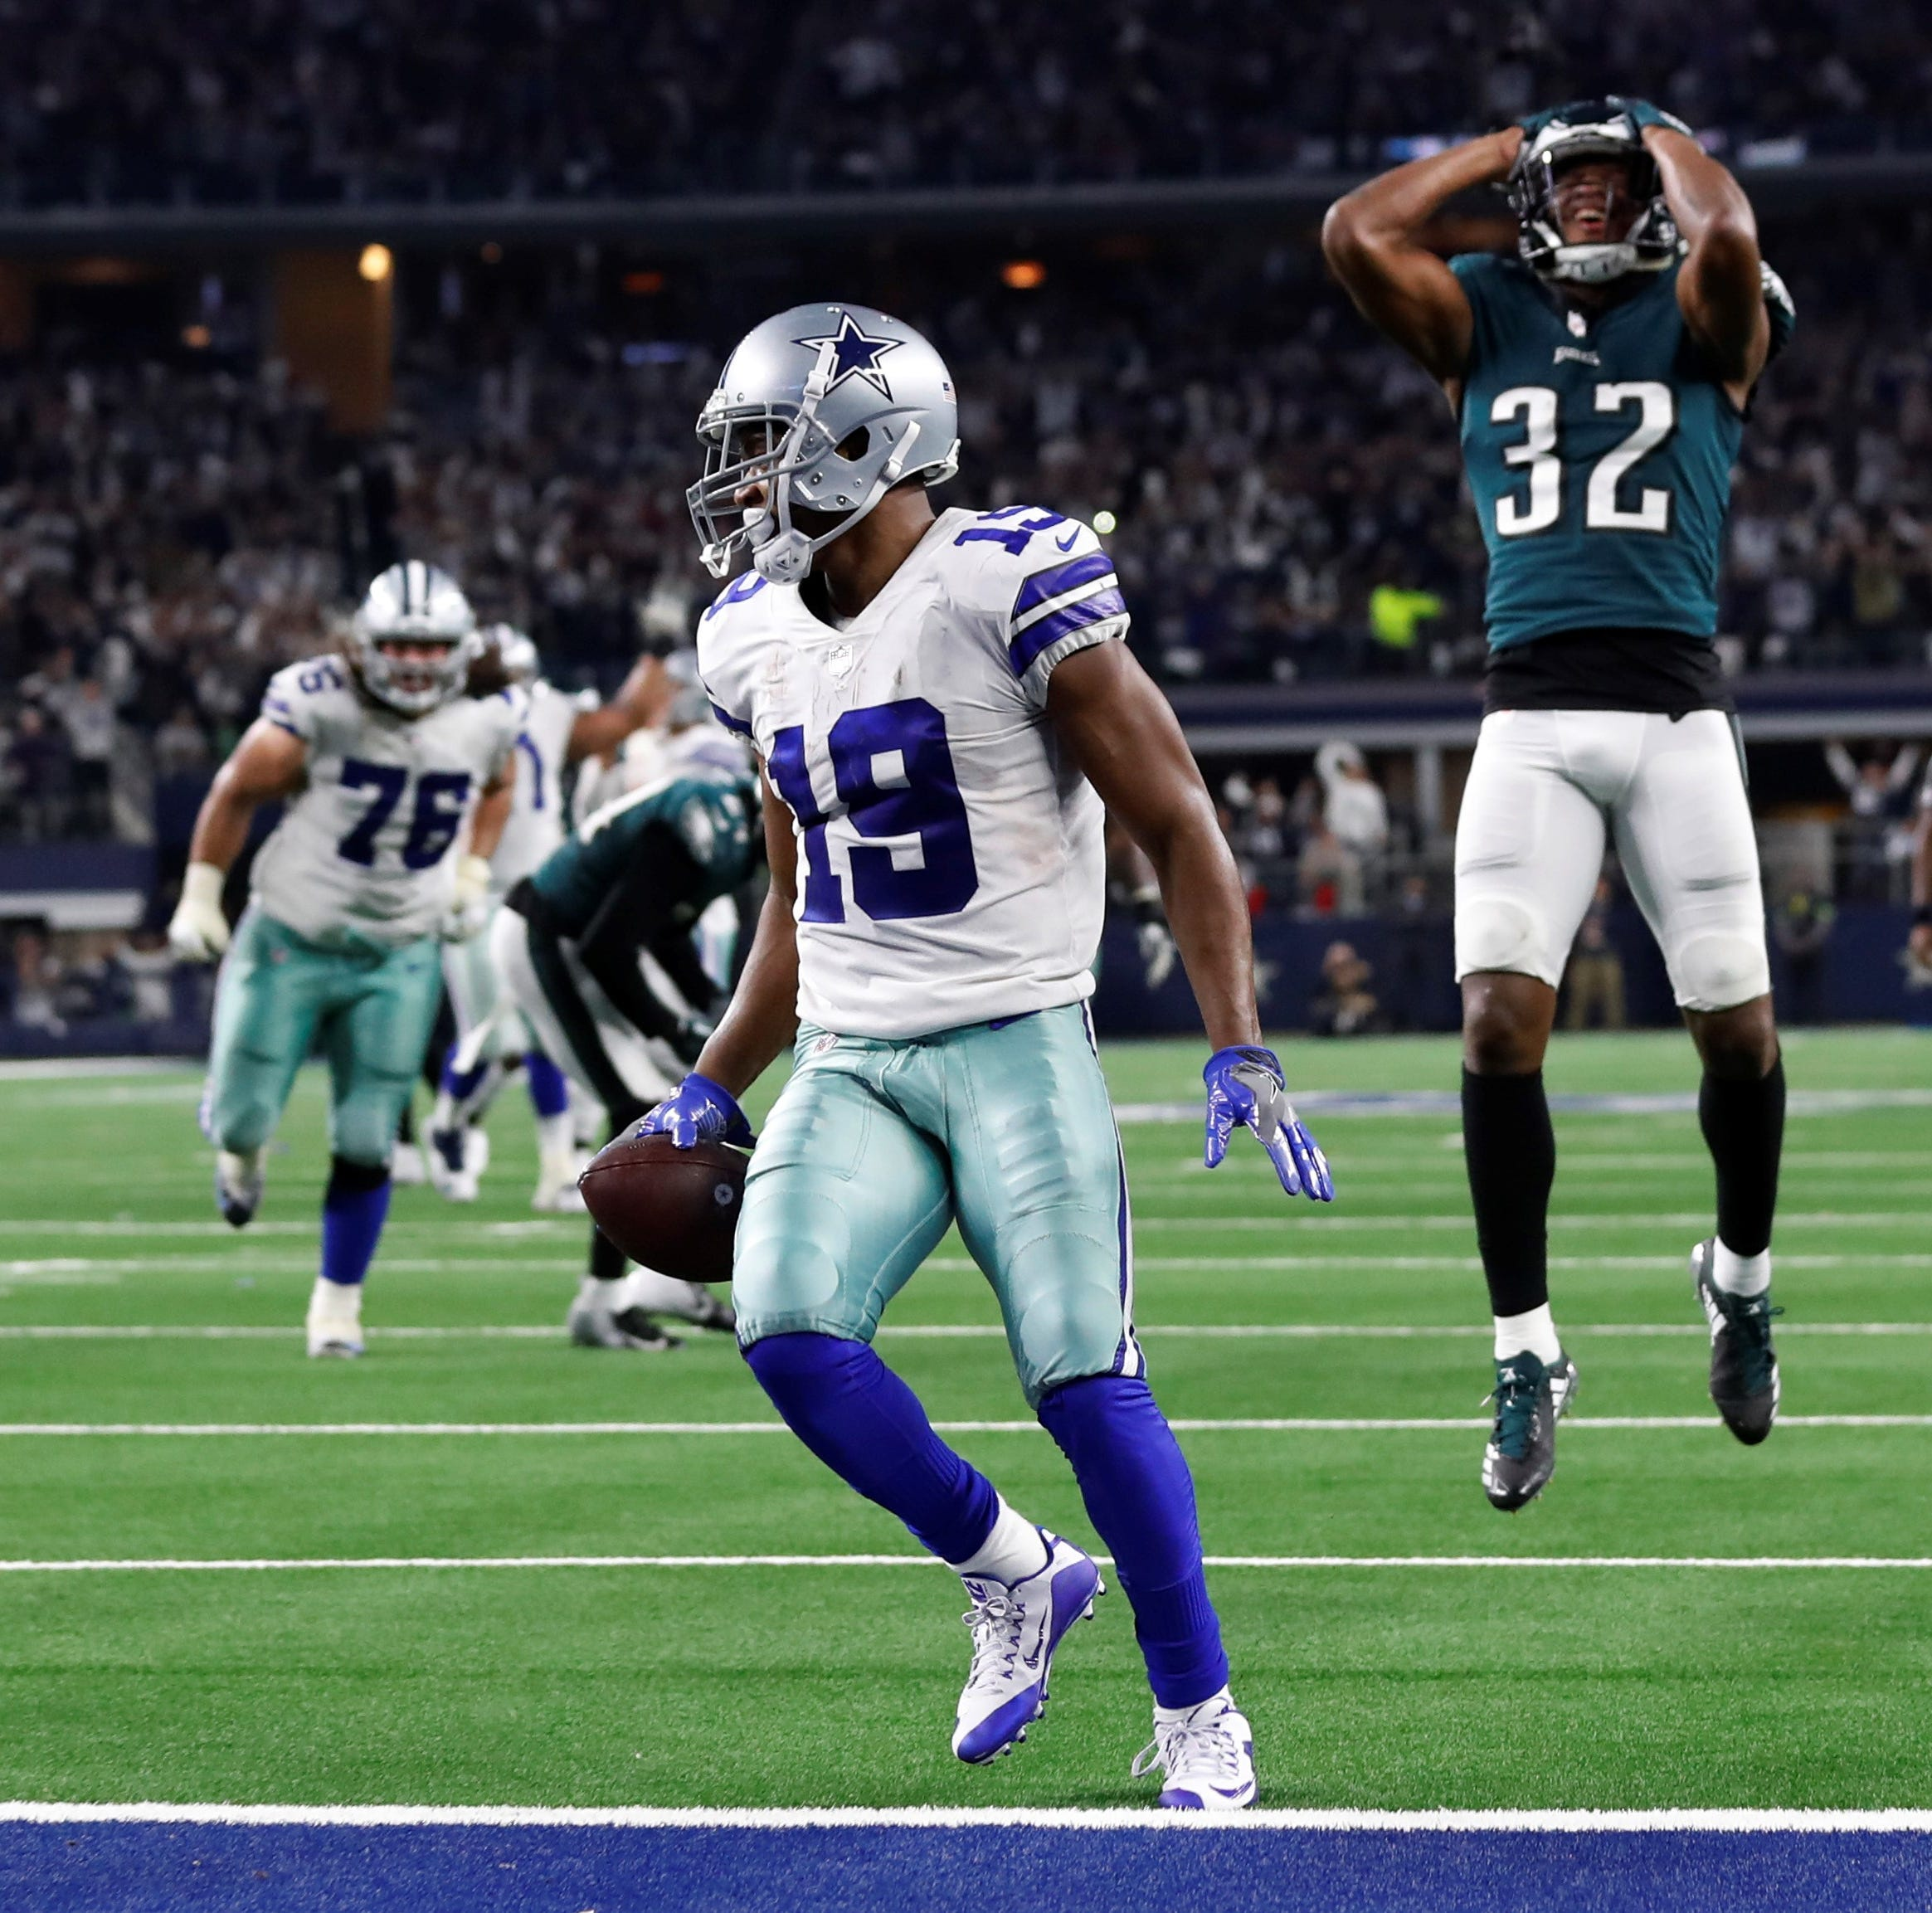 Philadelphia Eagles fall in overtime against Dallas Cowboys, 29-23, drop to 6-7 on season